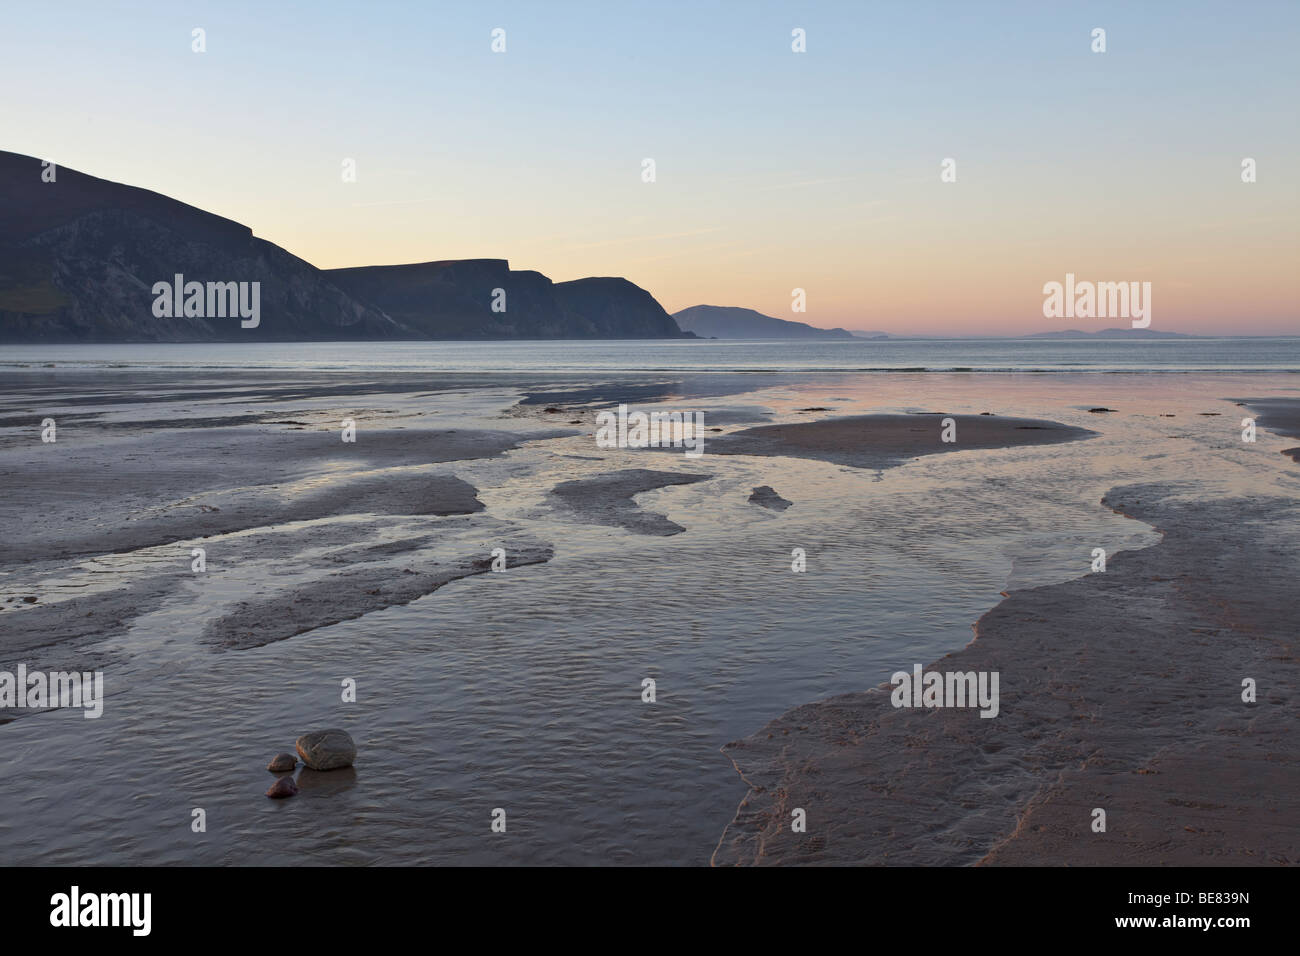 The beach at Keel Strand on Achill Island. - Stock Image